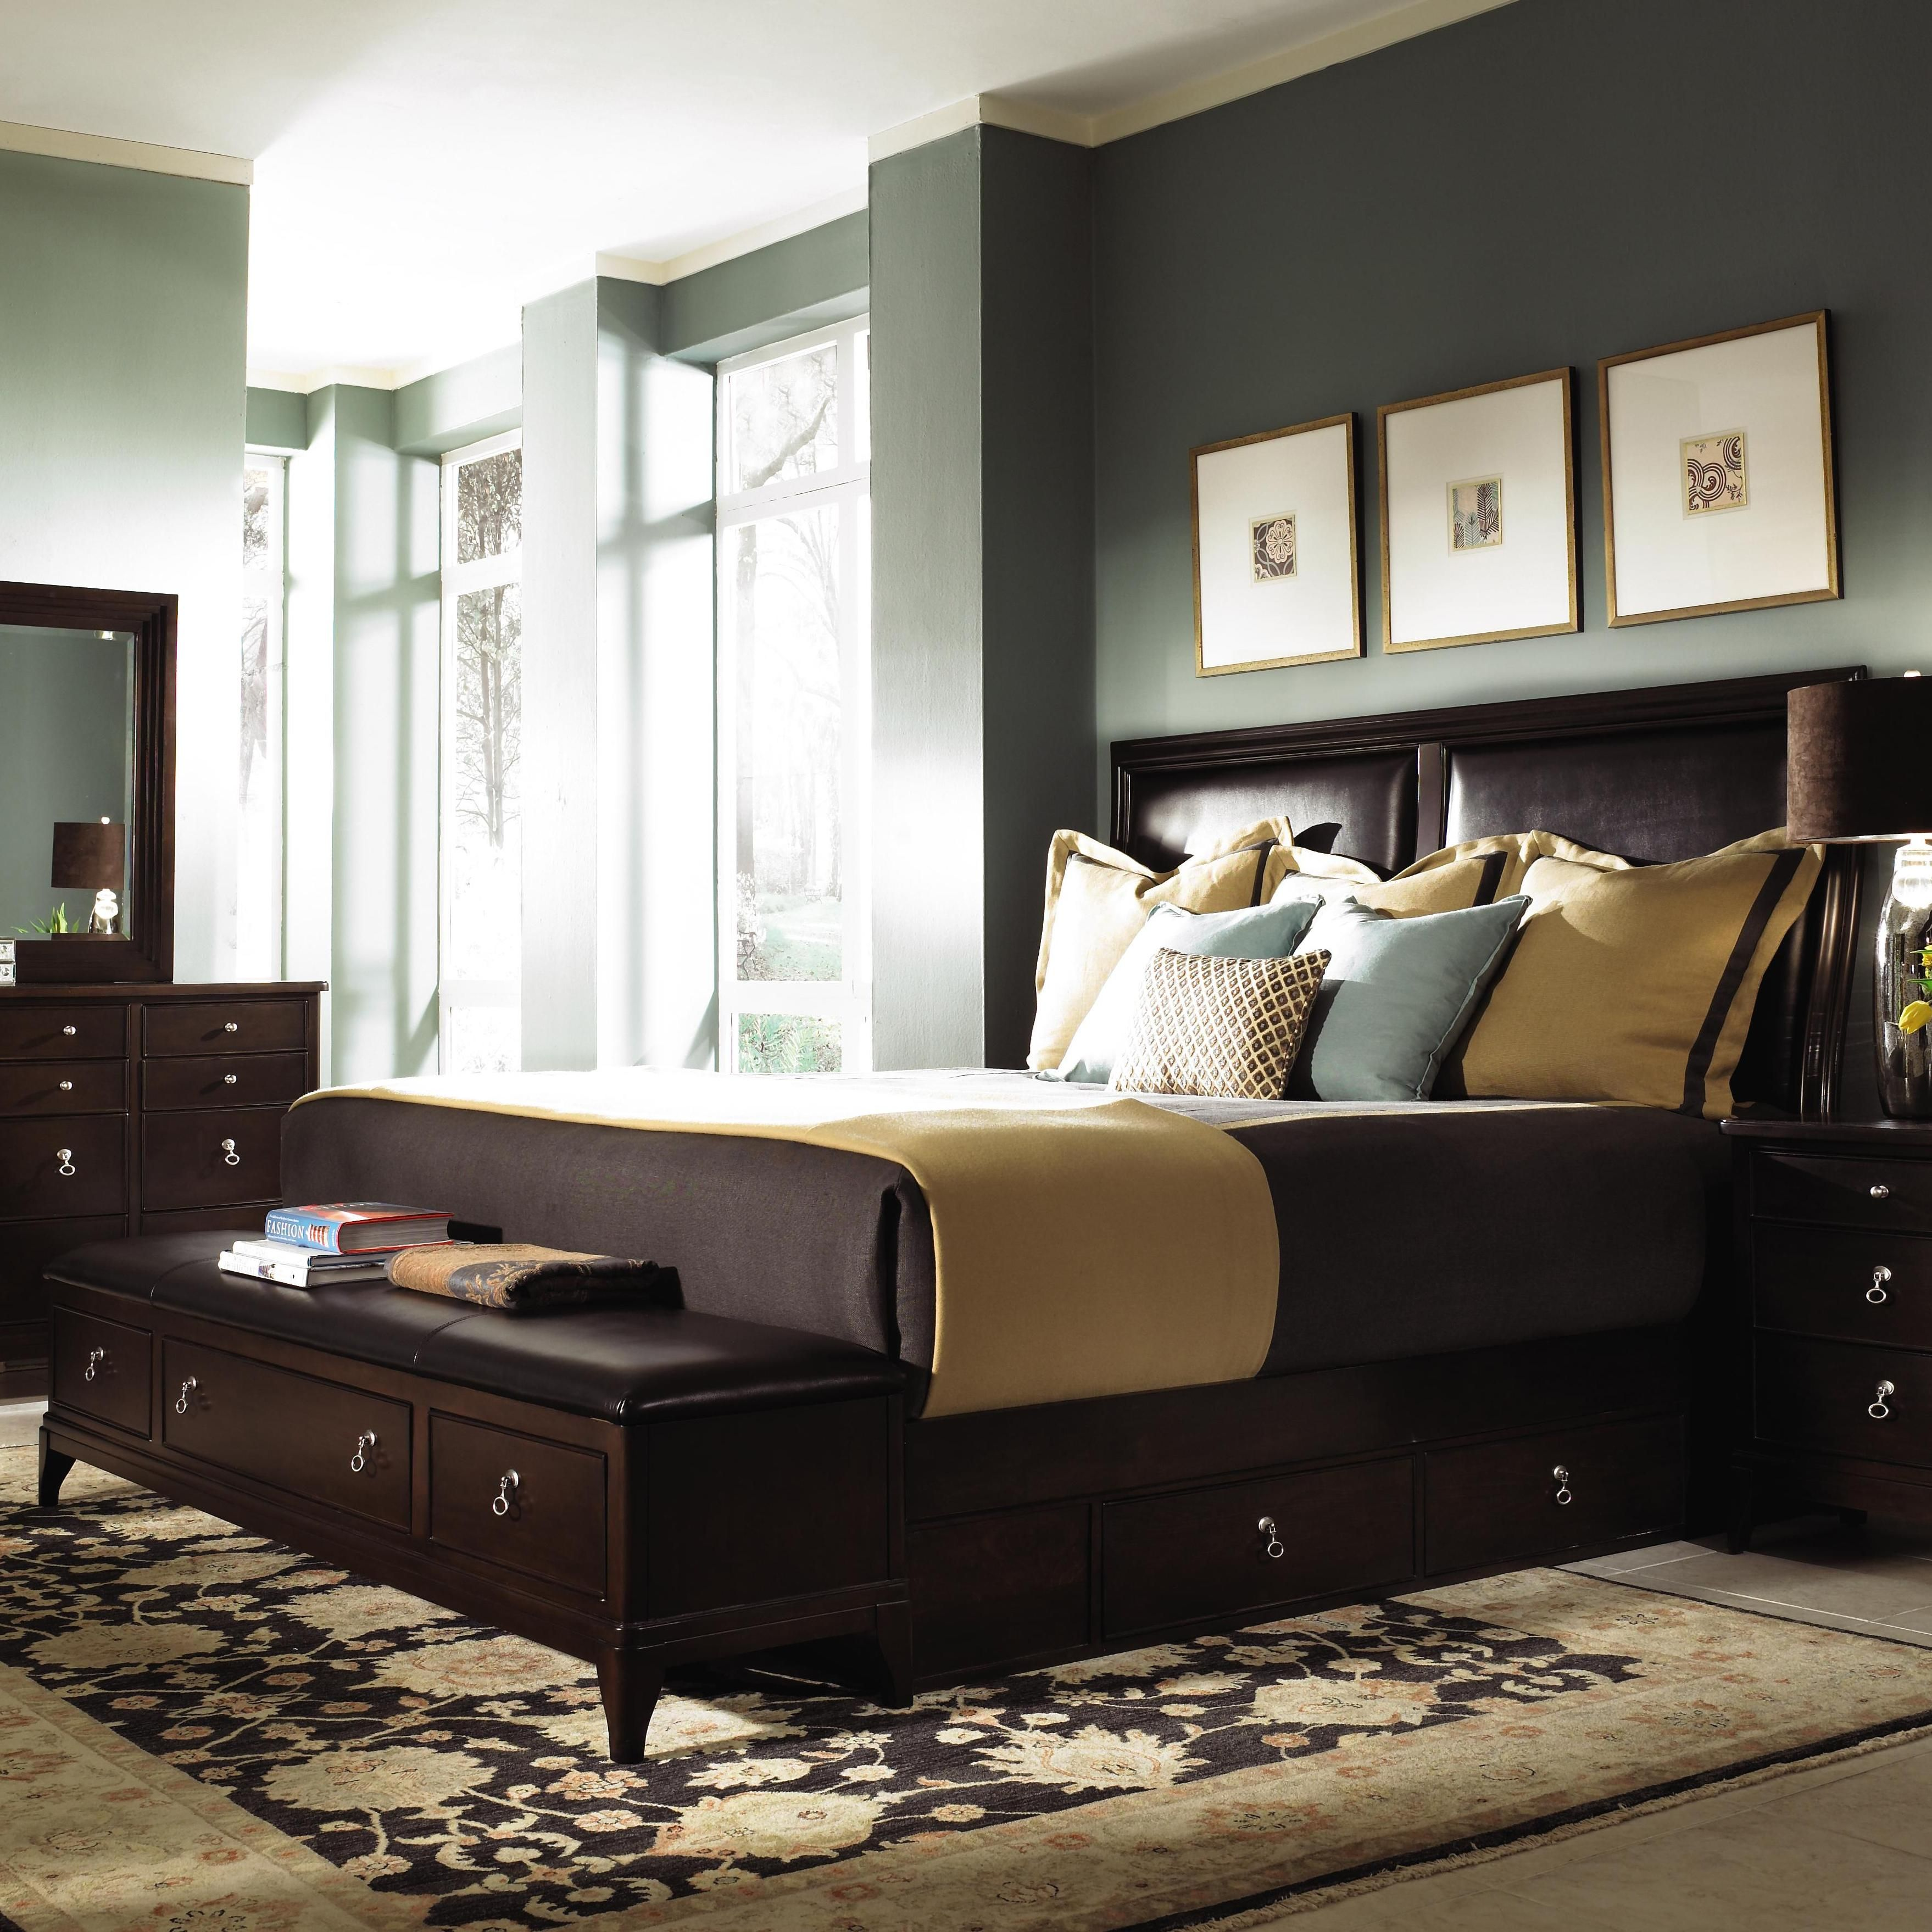 Incredible King Bed Bench Storage With Bedroom Size